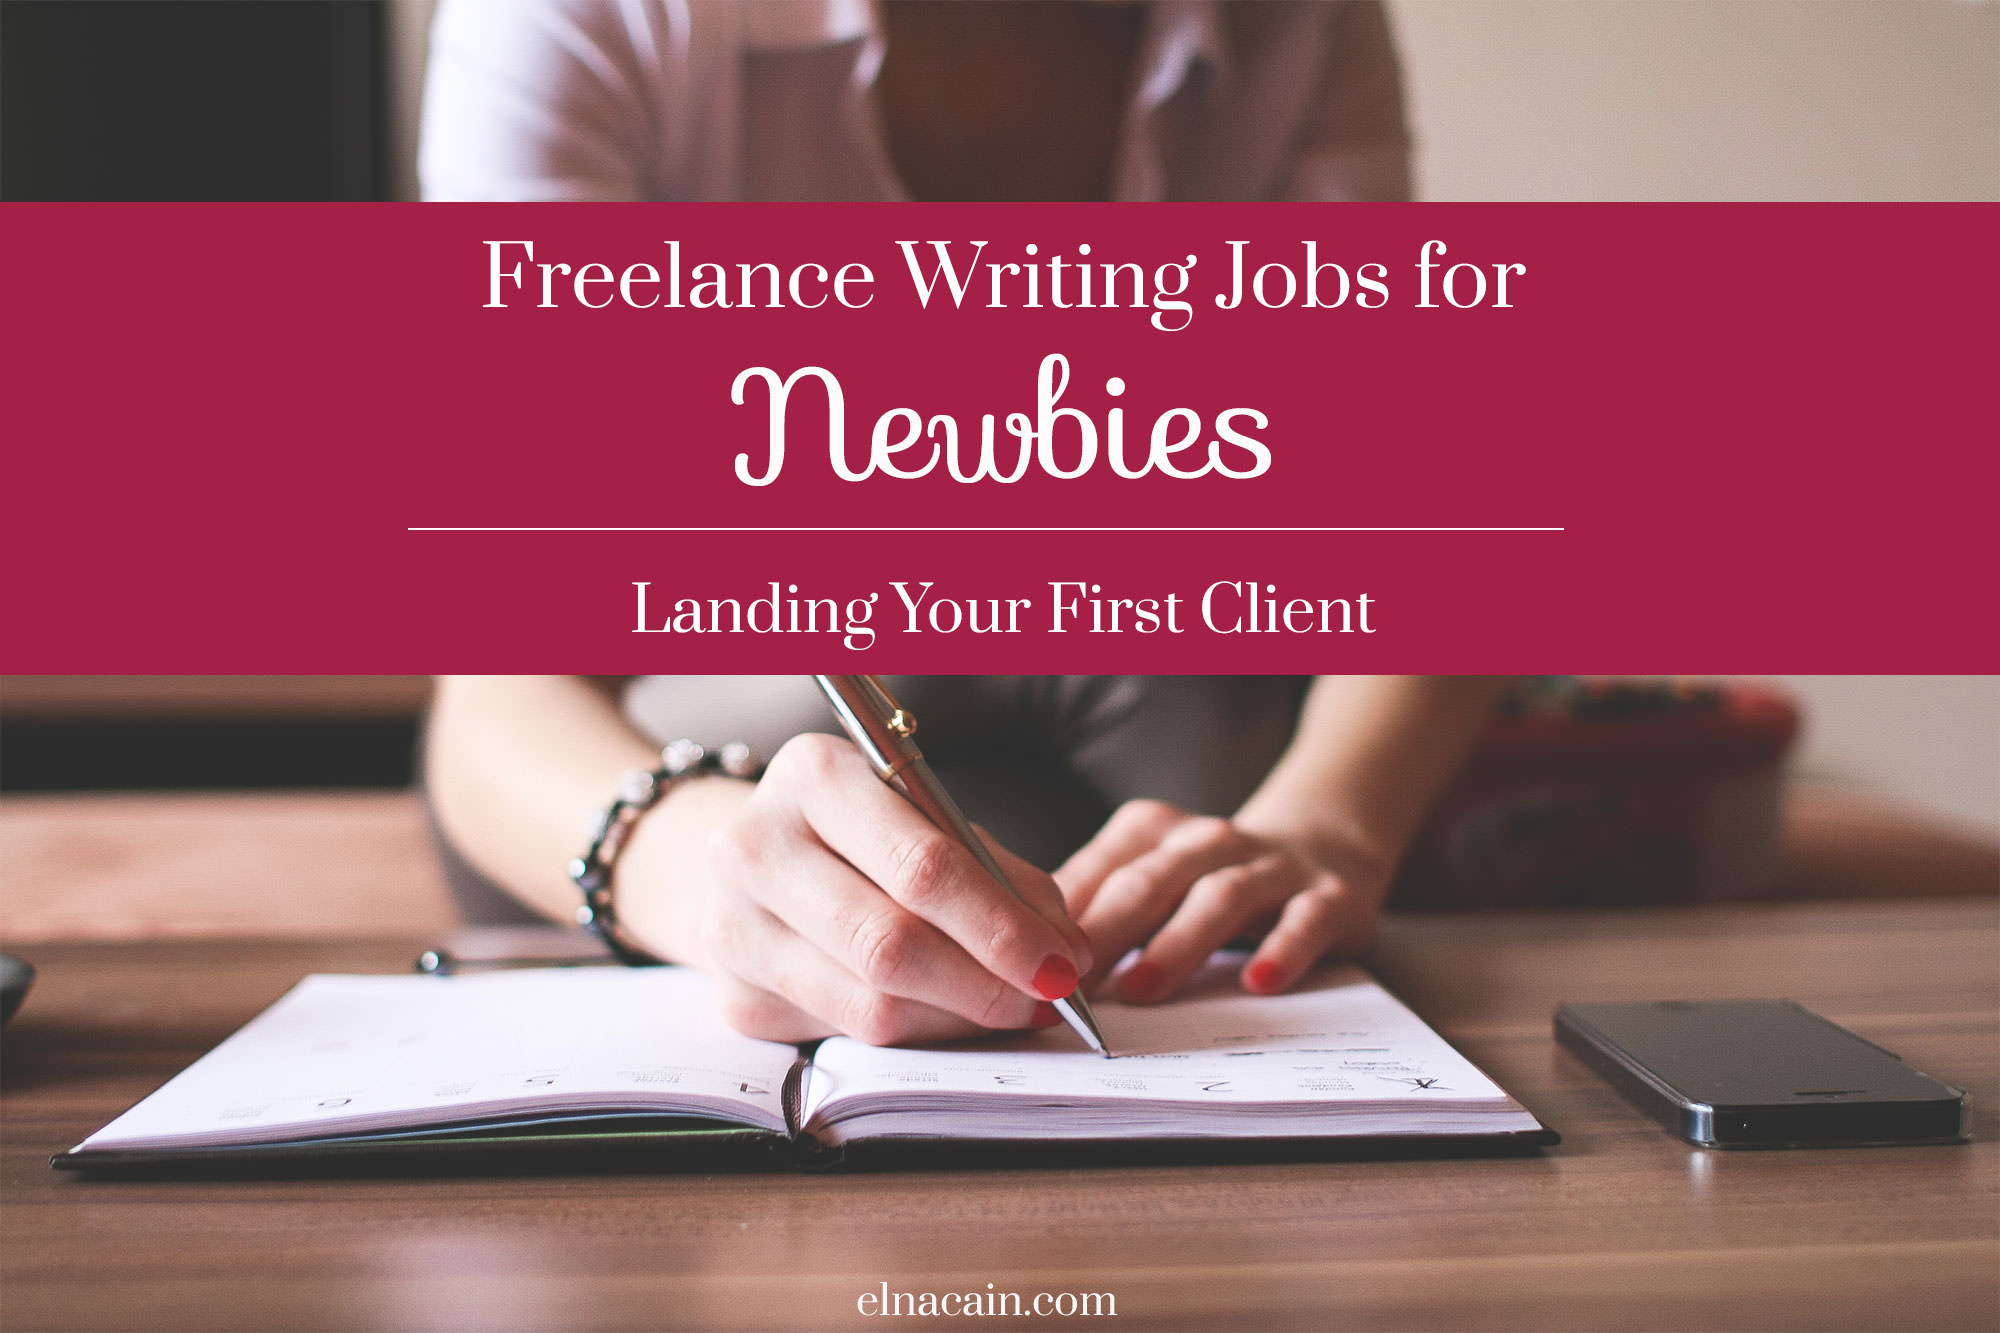 freelance writing opportunities online If you're sick and tired of low-paying freelance writing jobs, change the way you're looking for work here are 3 simple ways to find great clients.